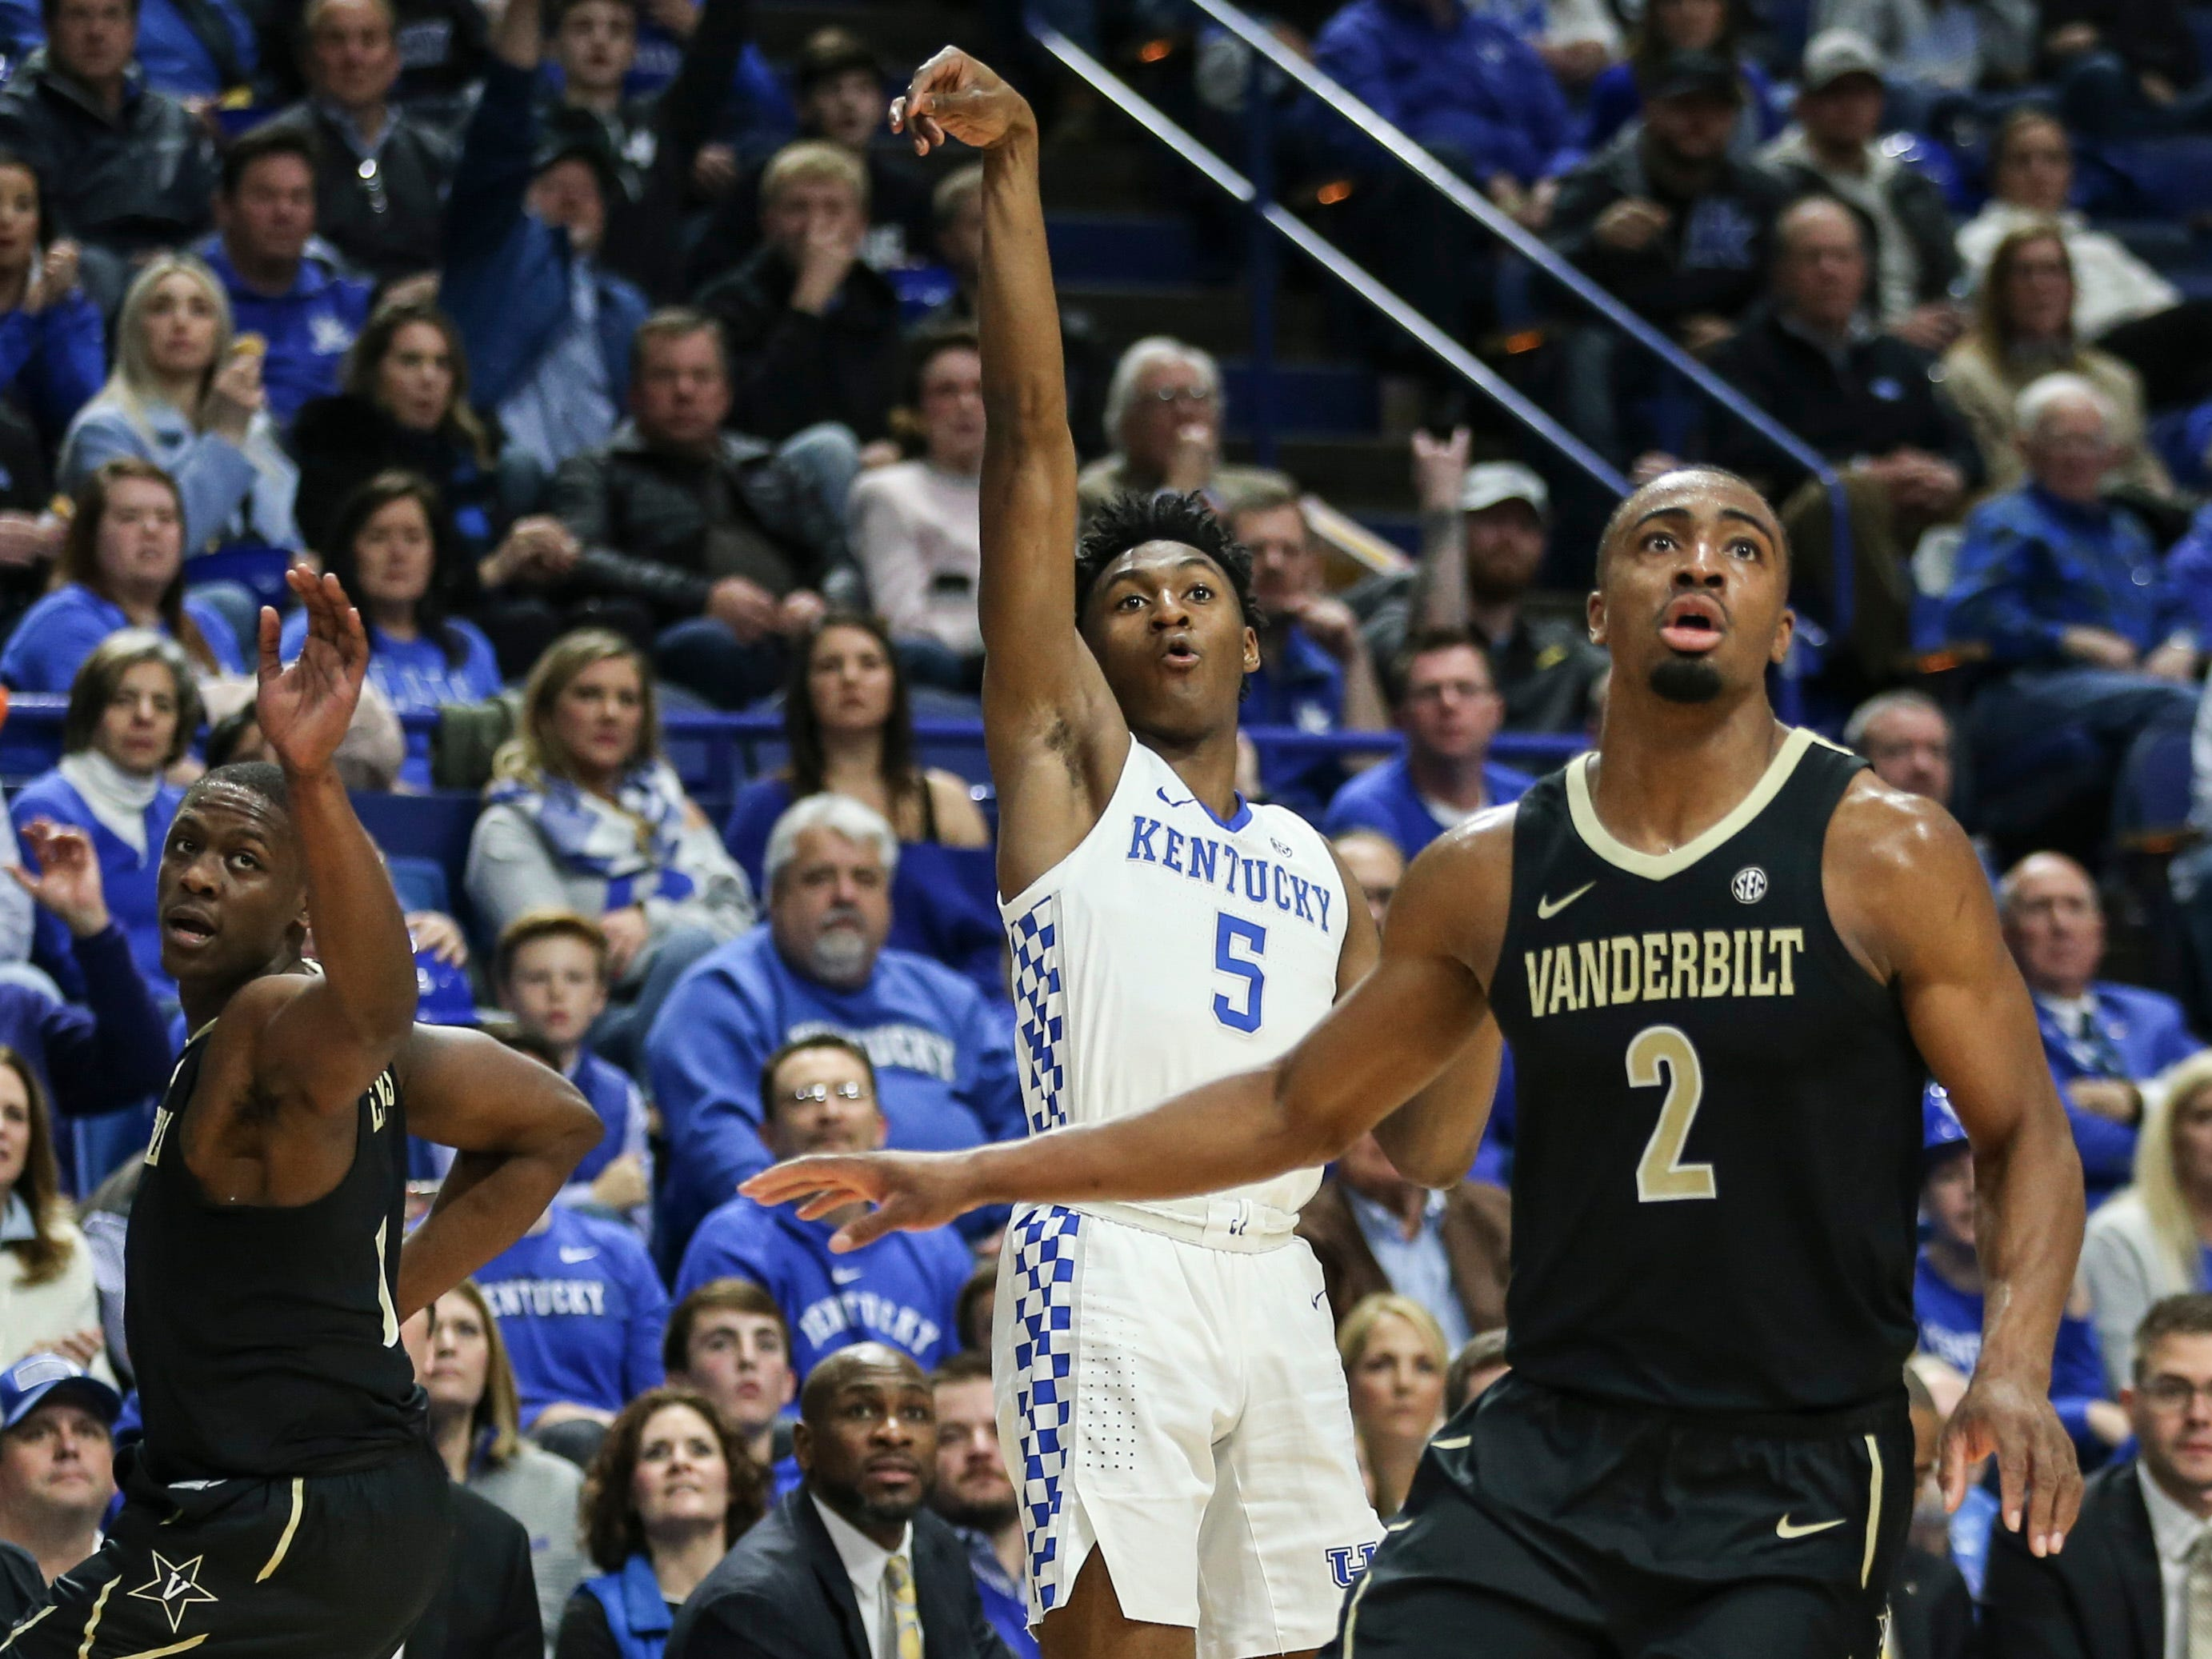 Kentucky's Immanuel Quickley hit this three-pointer to help spark the Wildcats in the first half against Vandy Saturday night at Rupp Arena in Lexington. Quickley finished with 12 points. January 12, 2019